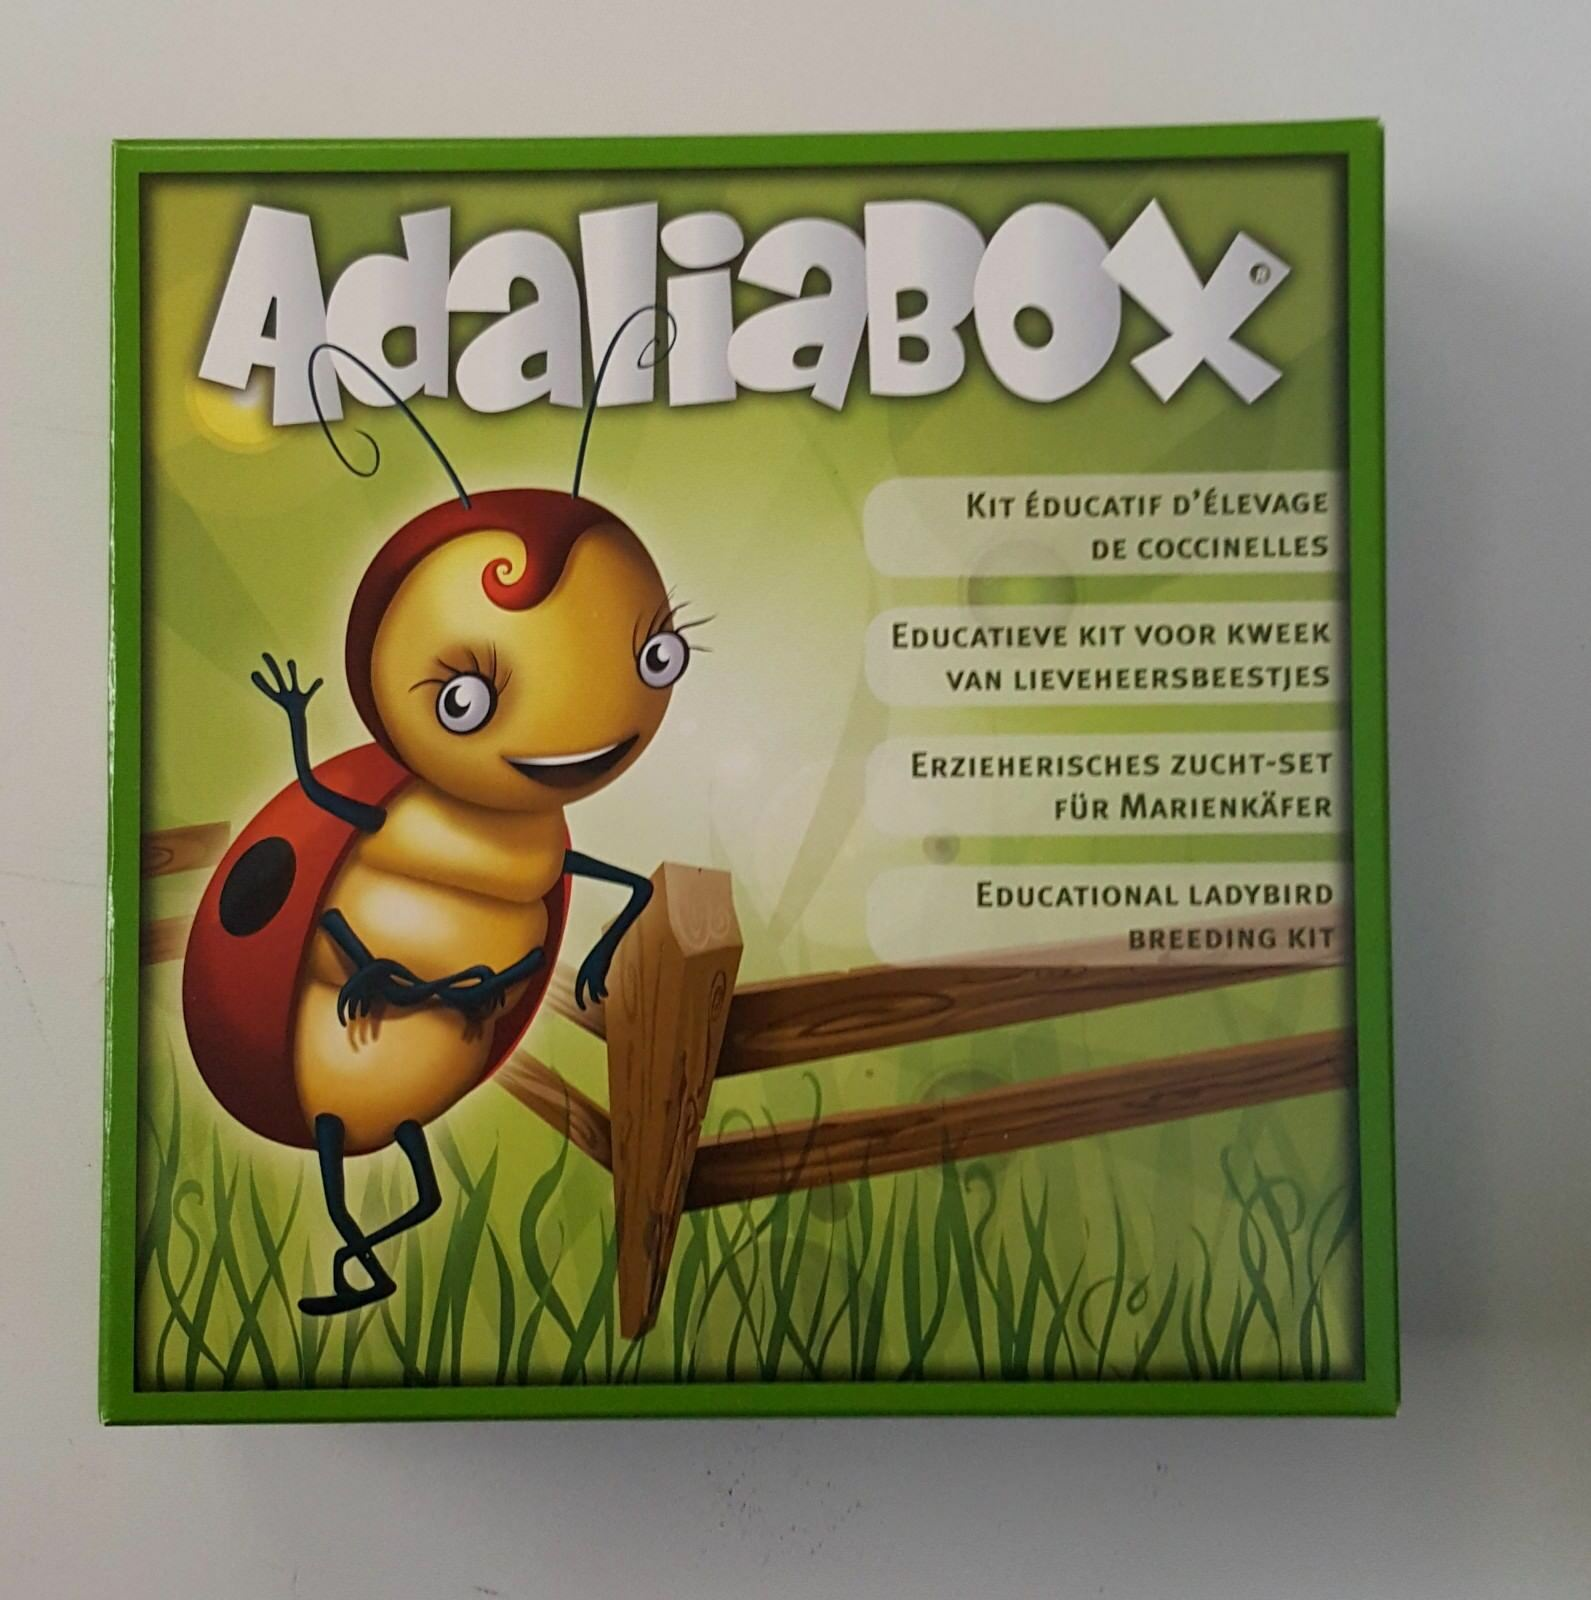 Ladybird Breeding Kit complete with VOUCHER for Ladybird larvae GIFT